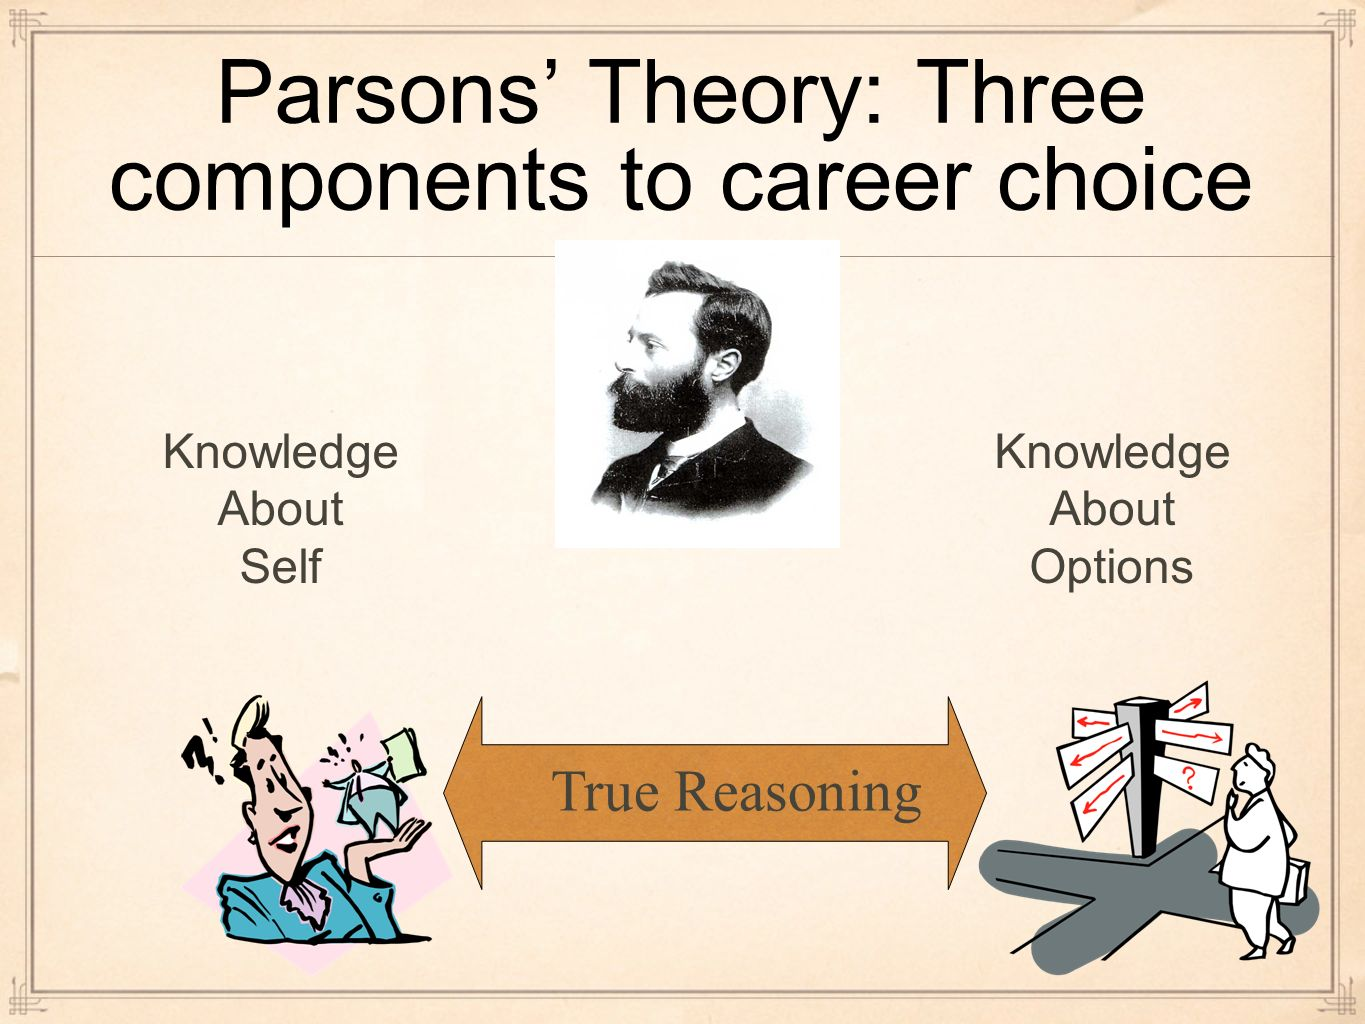 person environment correspondence counseling Person-environment fit theory and organizations: commensurate dimensions, time perspectives, and mechanisms  person (abilities and needs) and environment (demands and supplies)  example, is concerned with changing objective person-environment fit by recruiting certain types of abilities and skills into the organizations training, on the.